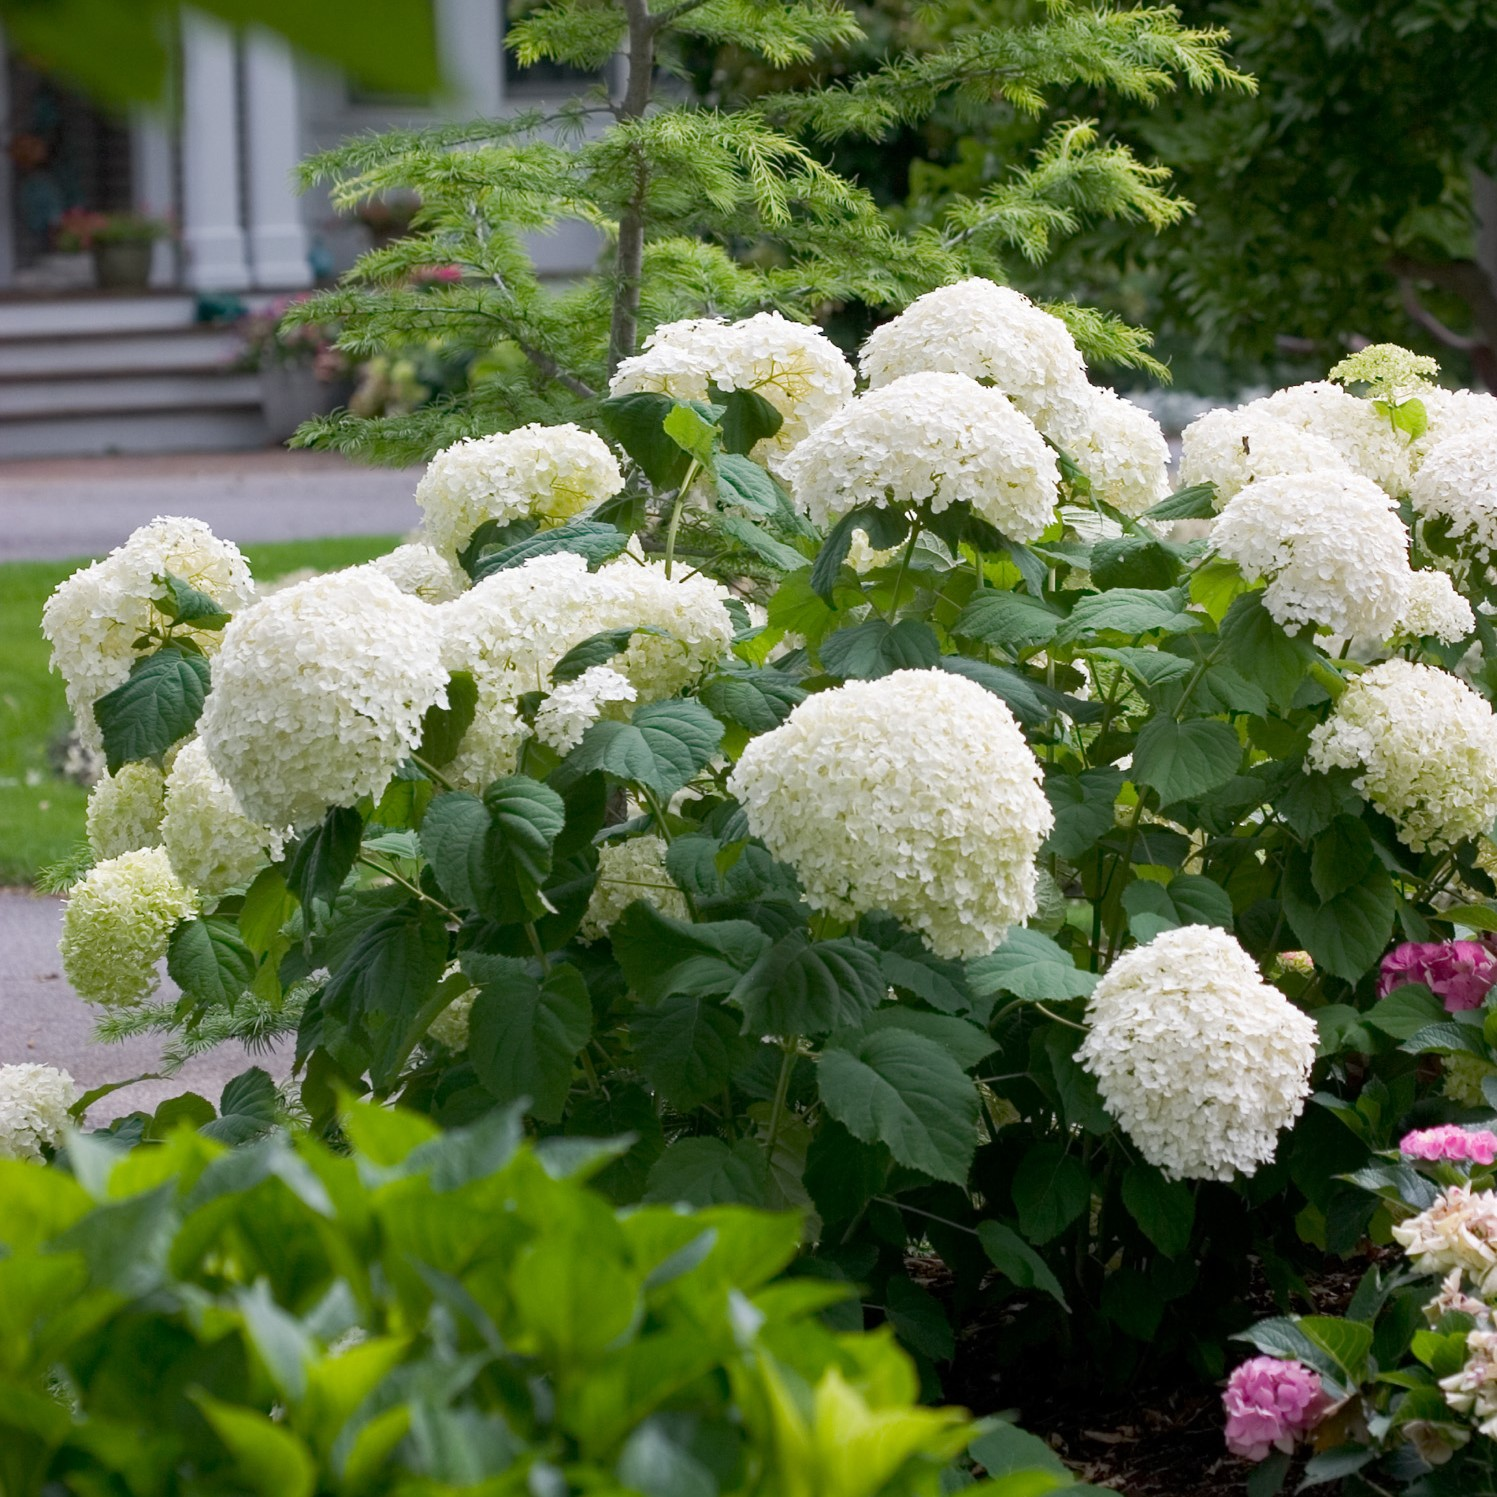 Incrediball hydrangea with huge spherical white flower heads